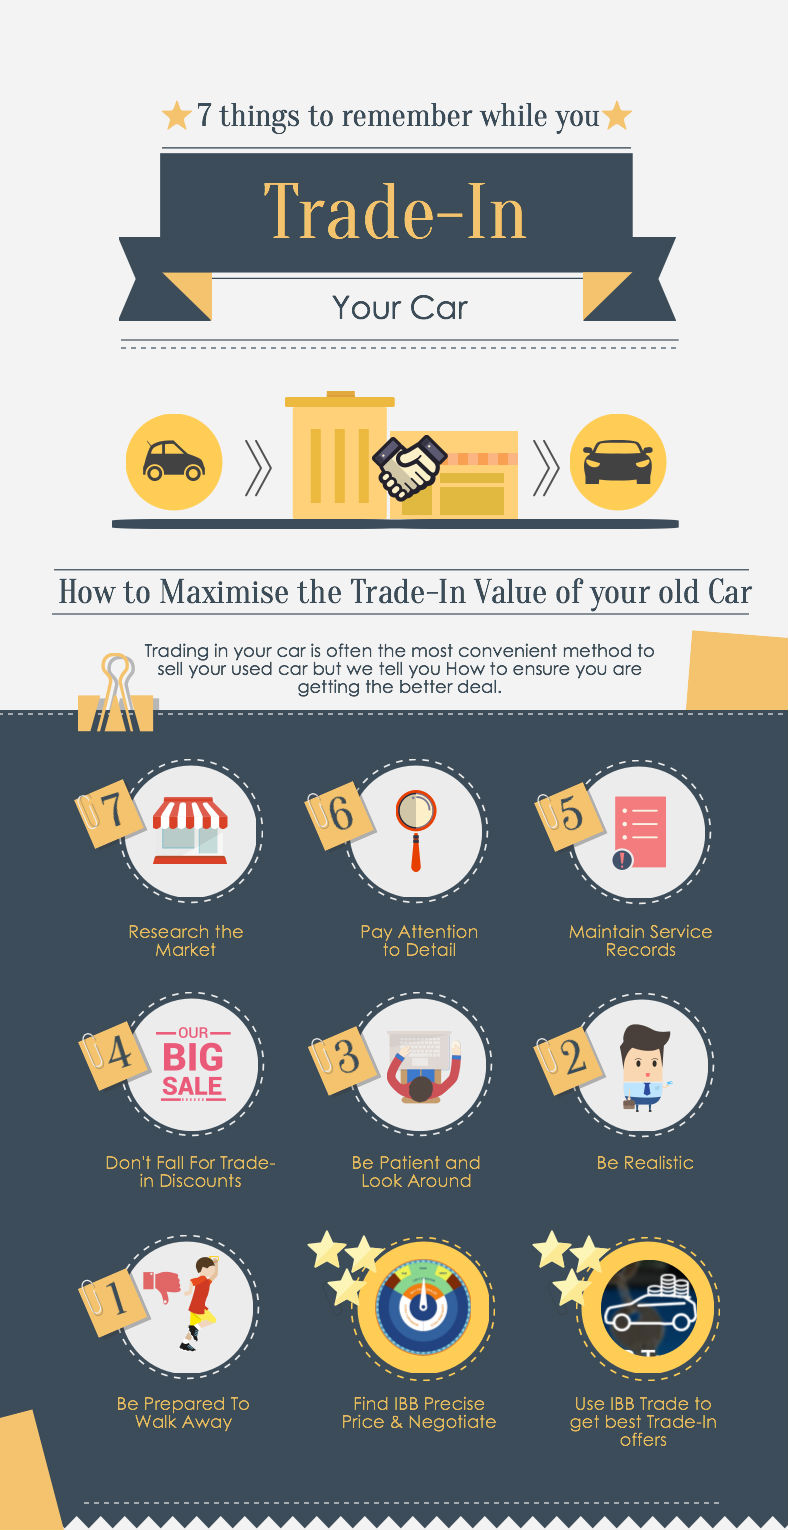 How to Maximize the Trade In Value of Your Old Car